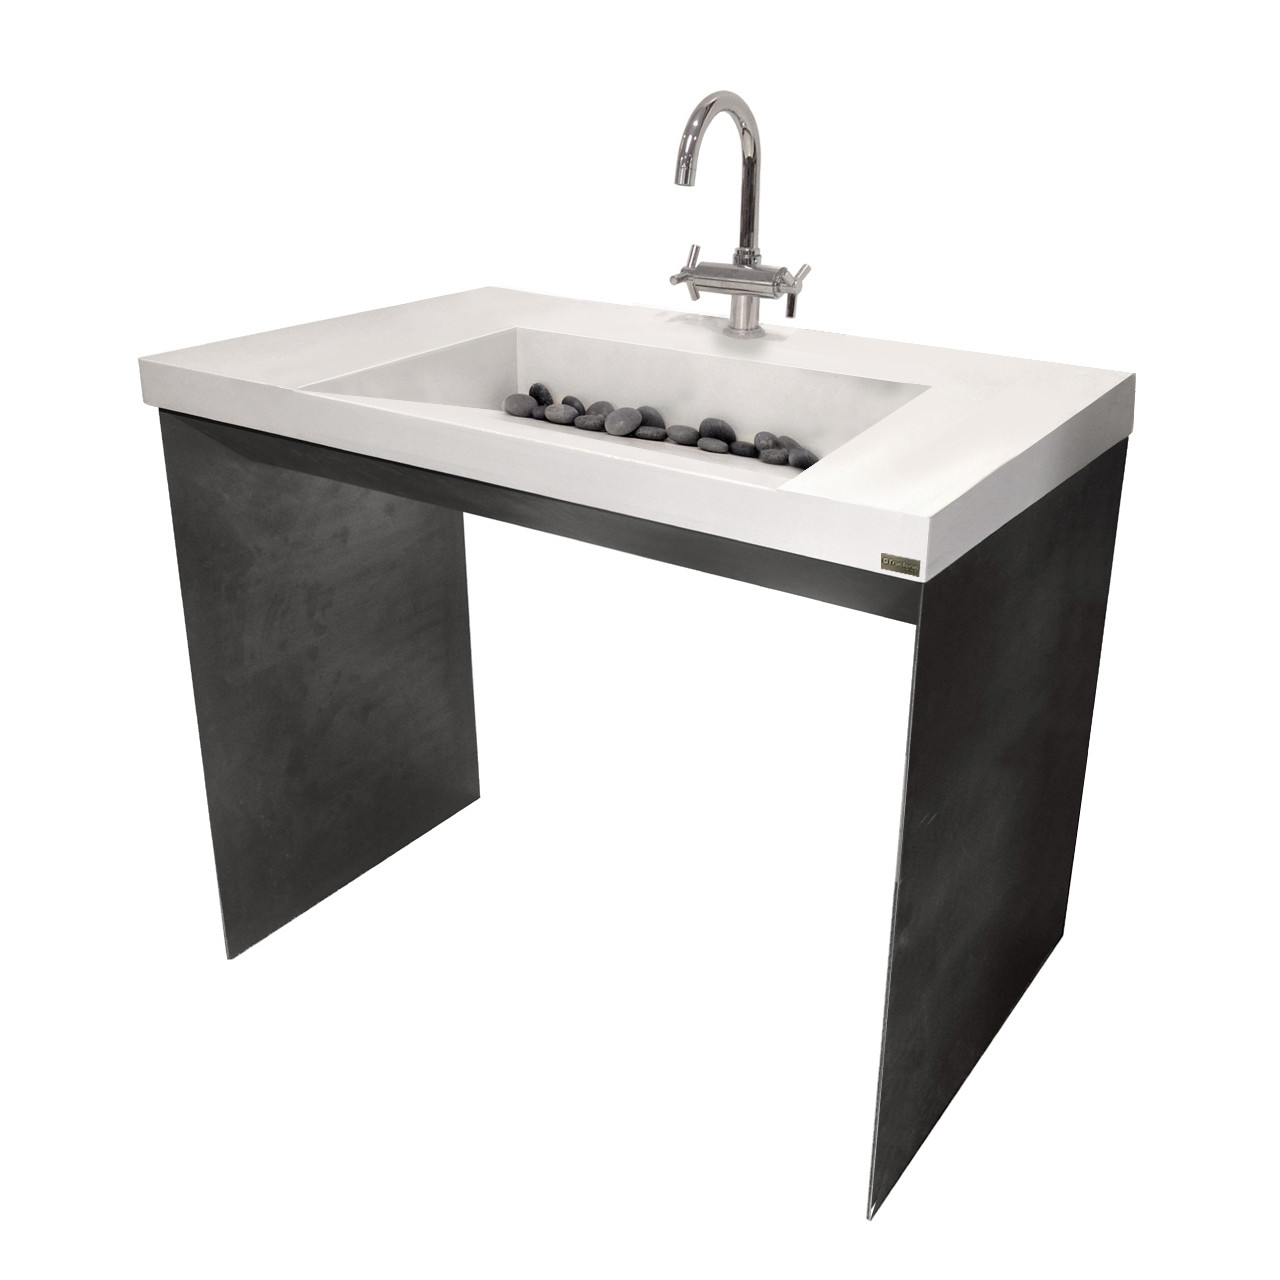 Ada 40 contempo bathroom vanity sink trueform concrete for Ada compliant bathroom sink